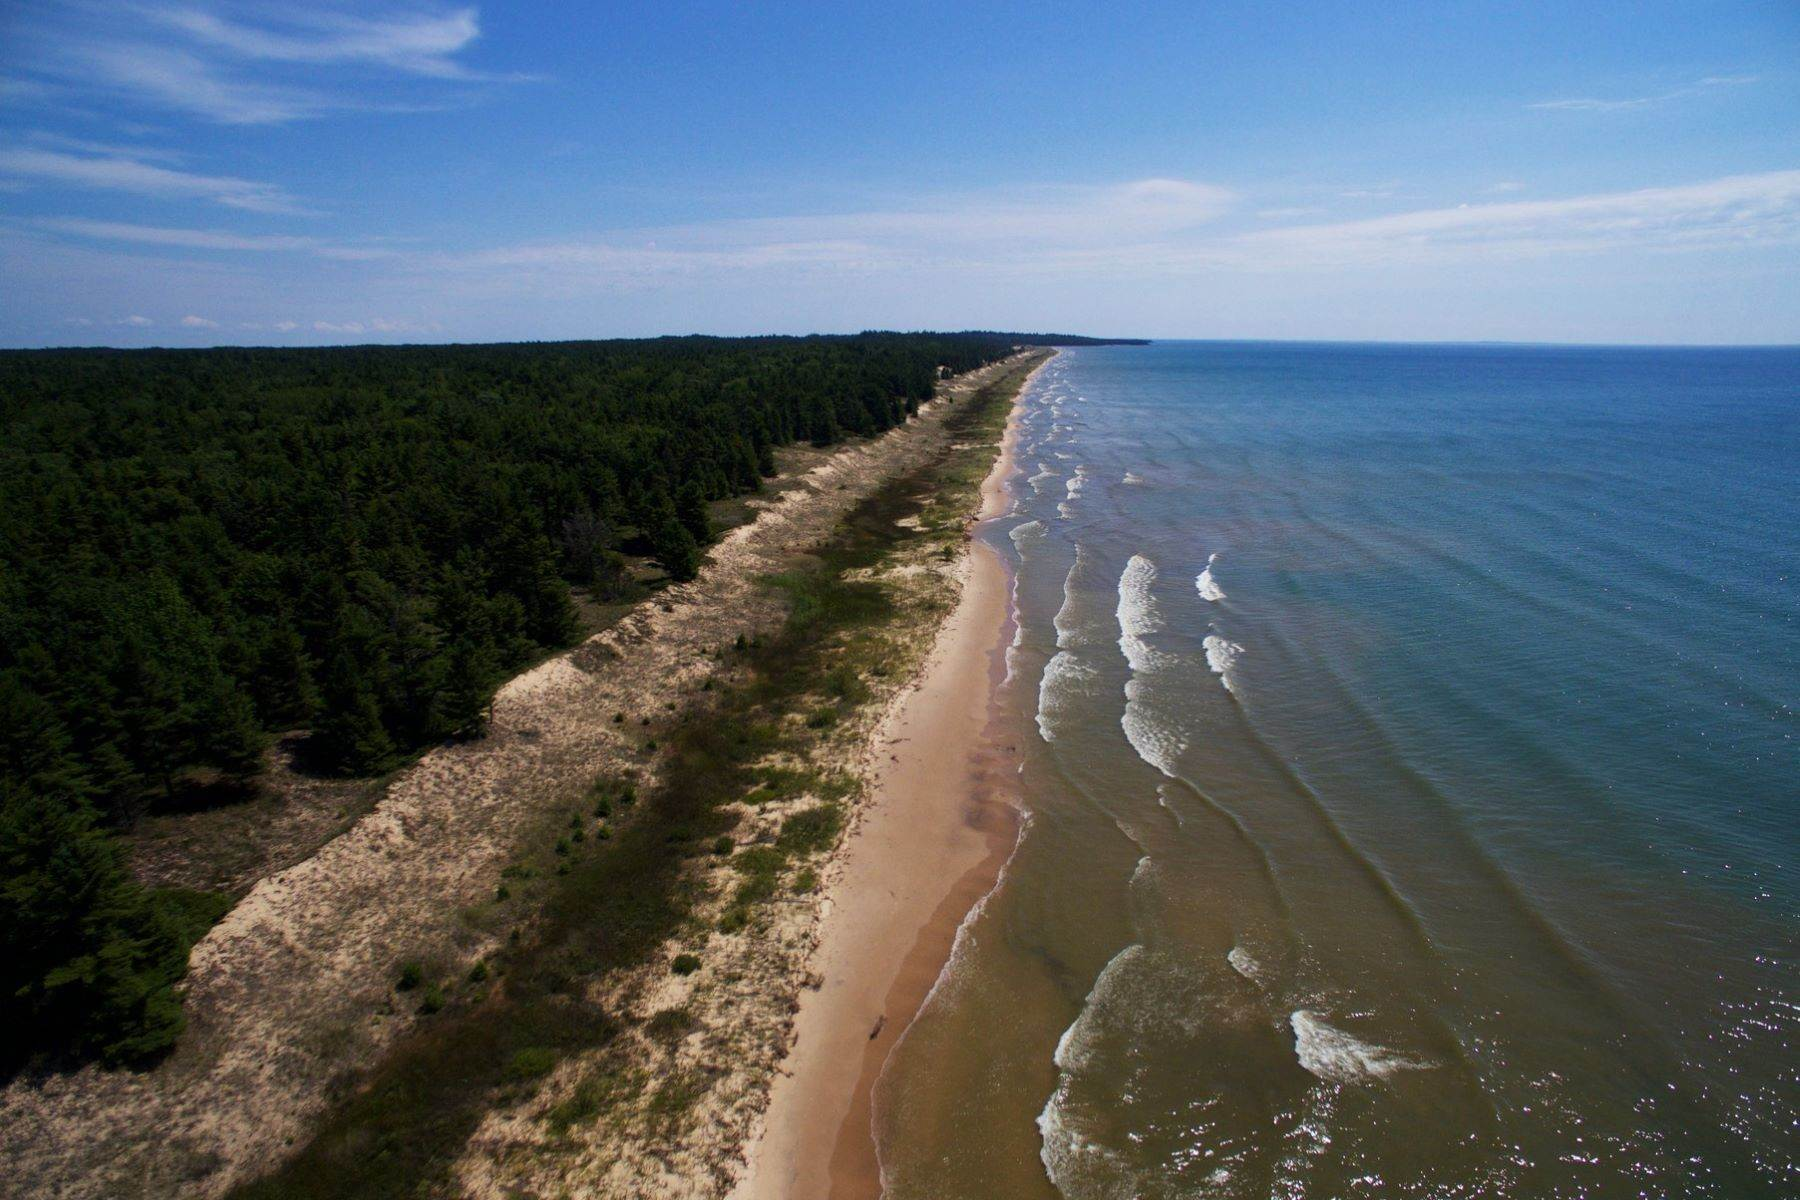 5. Single Family Homes for Sale at 2 Miles of Lake Michigan Waterfront 2625 W. Top O the Lake Road Gulliver, Michigan 49840 United States